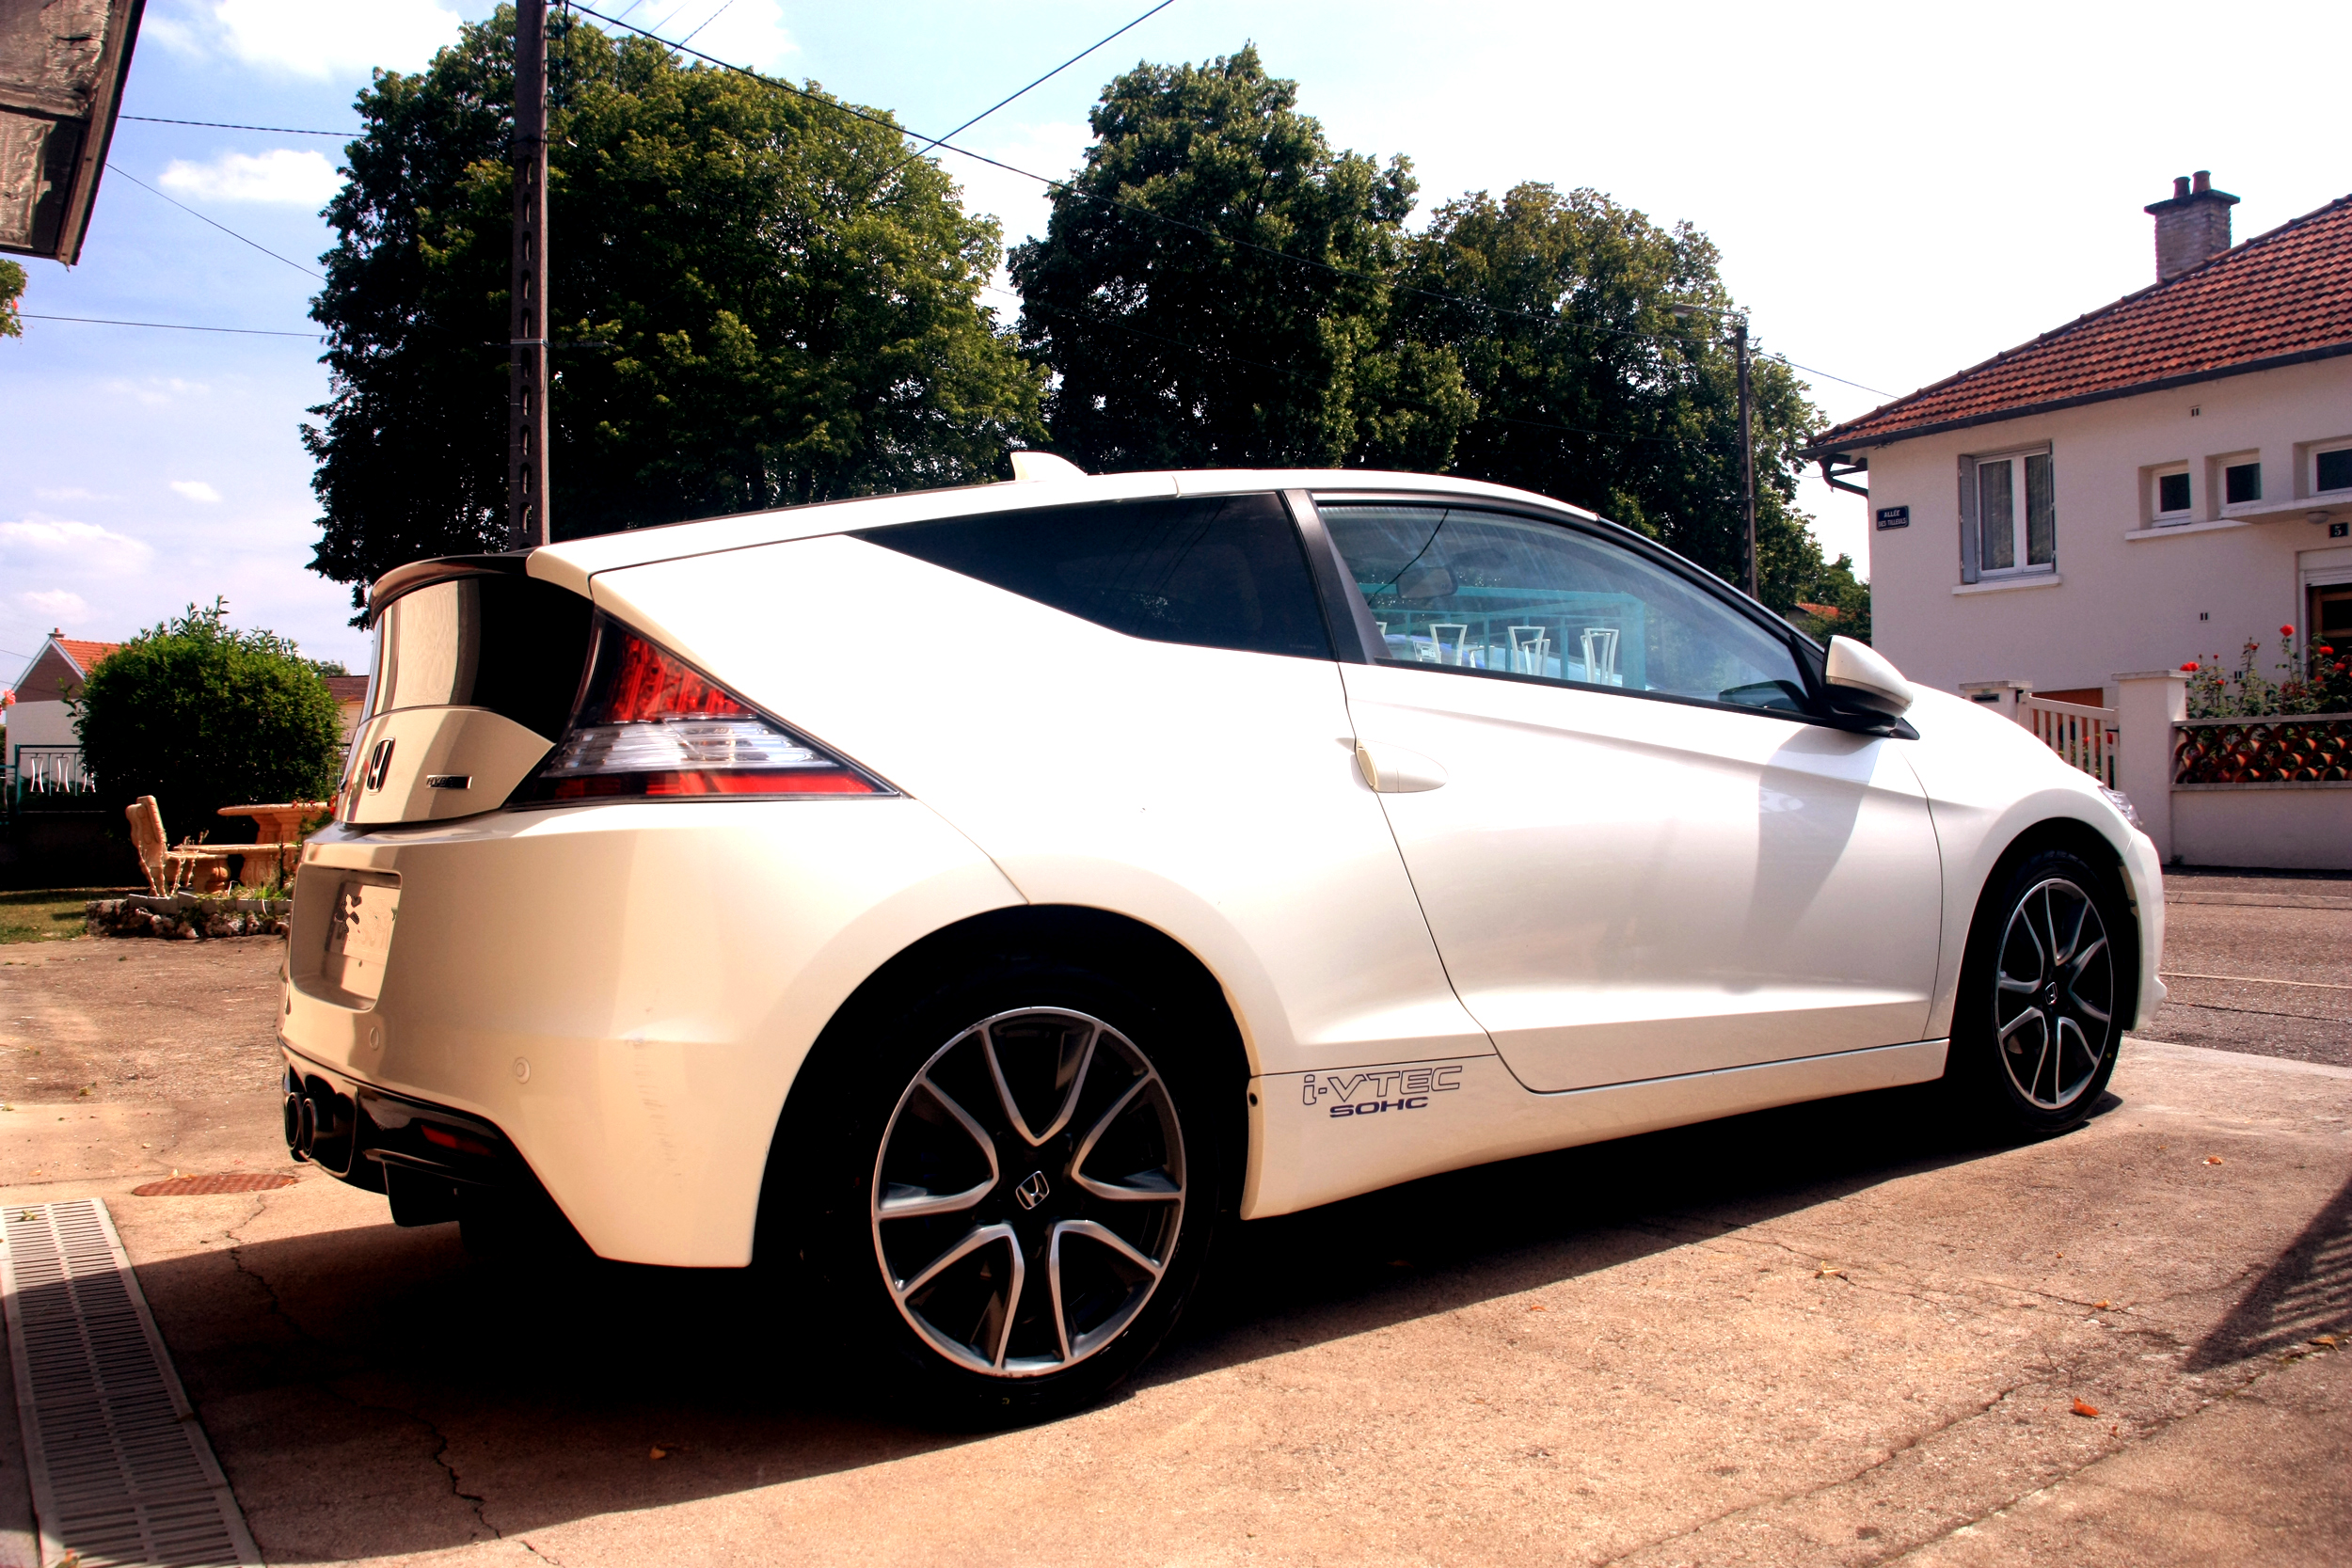 CR-Z Owned Luxury Blanc 150801120407733511